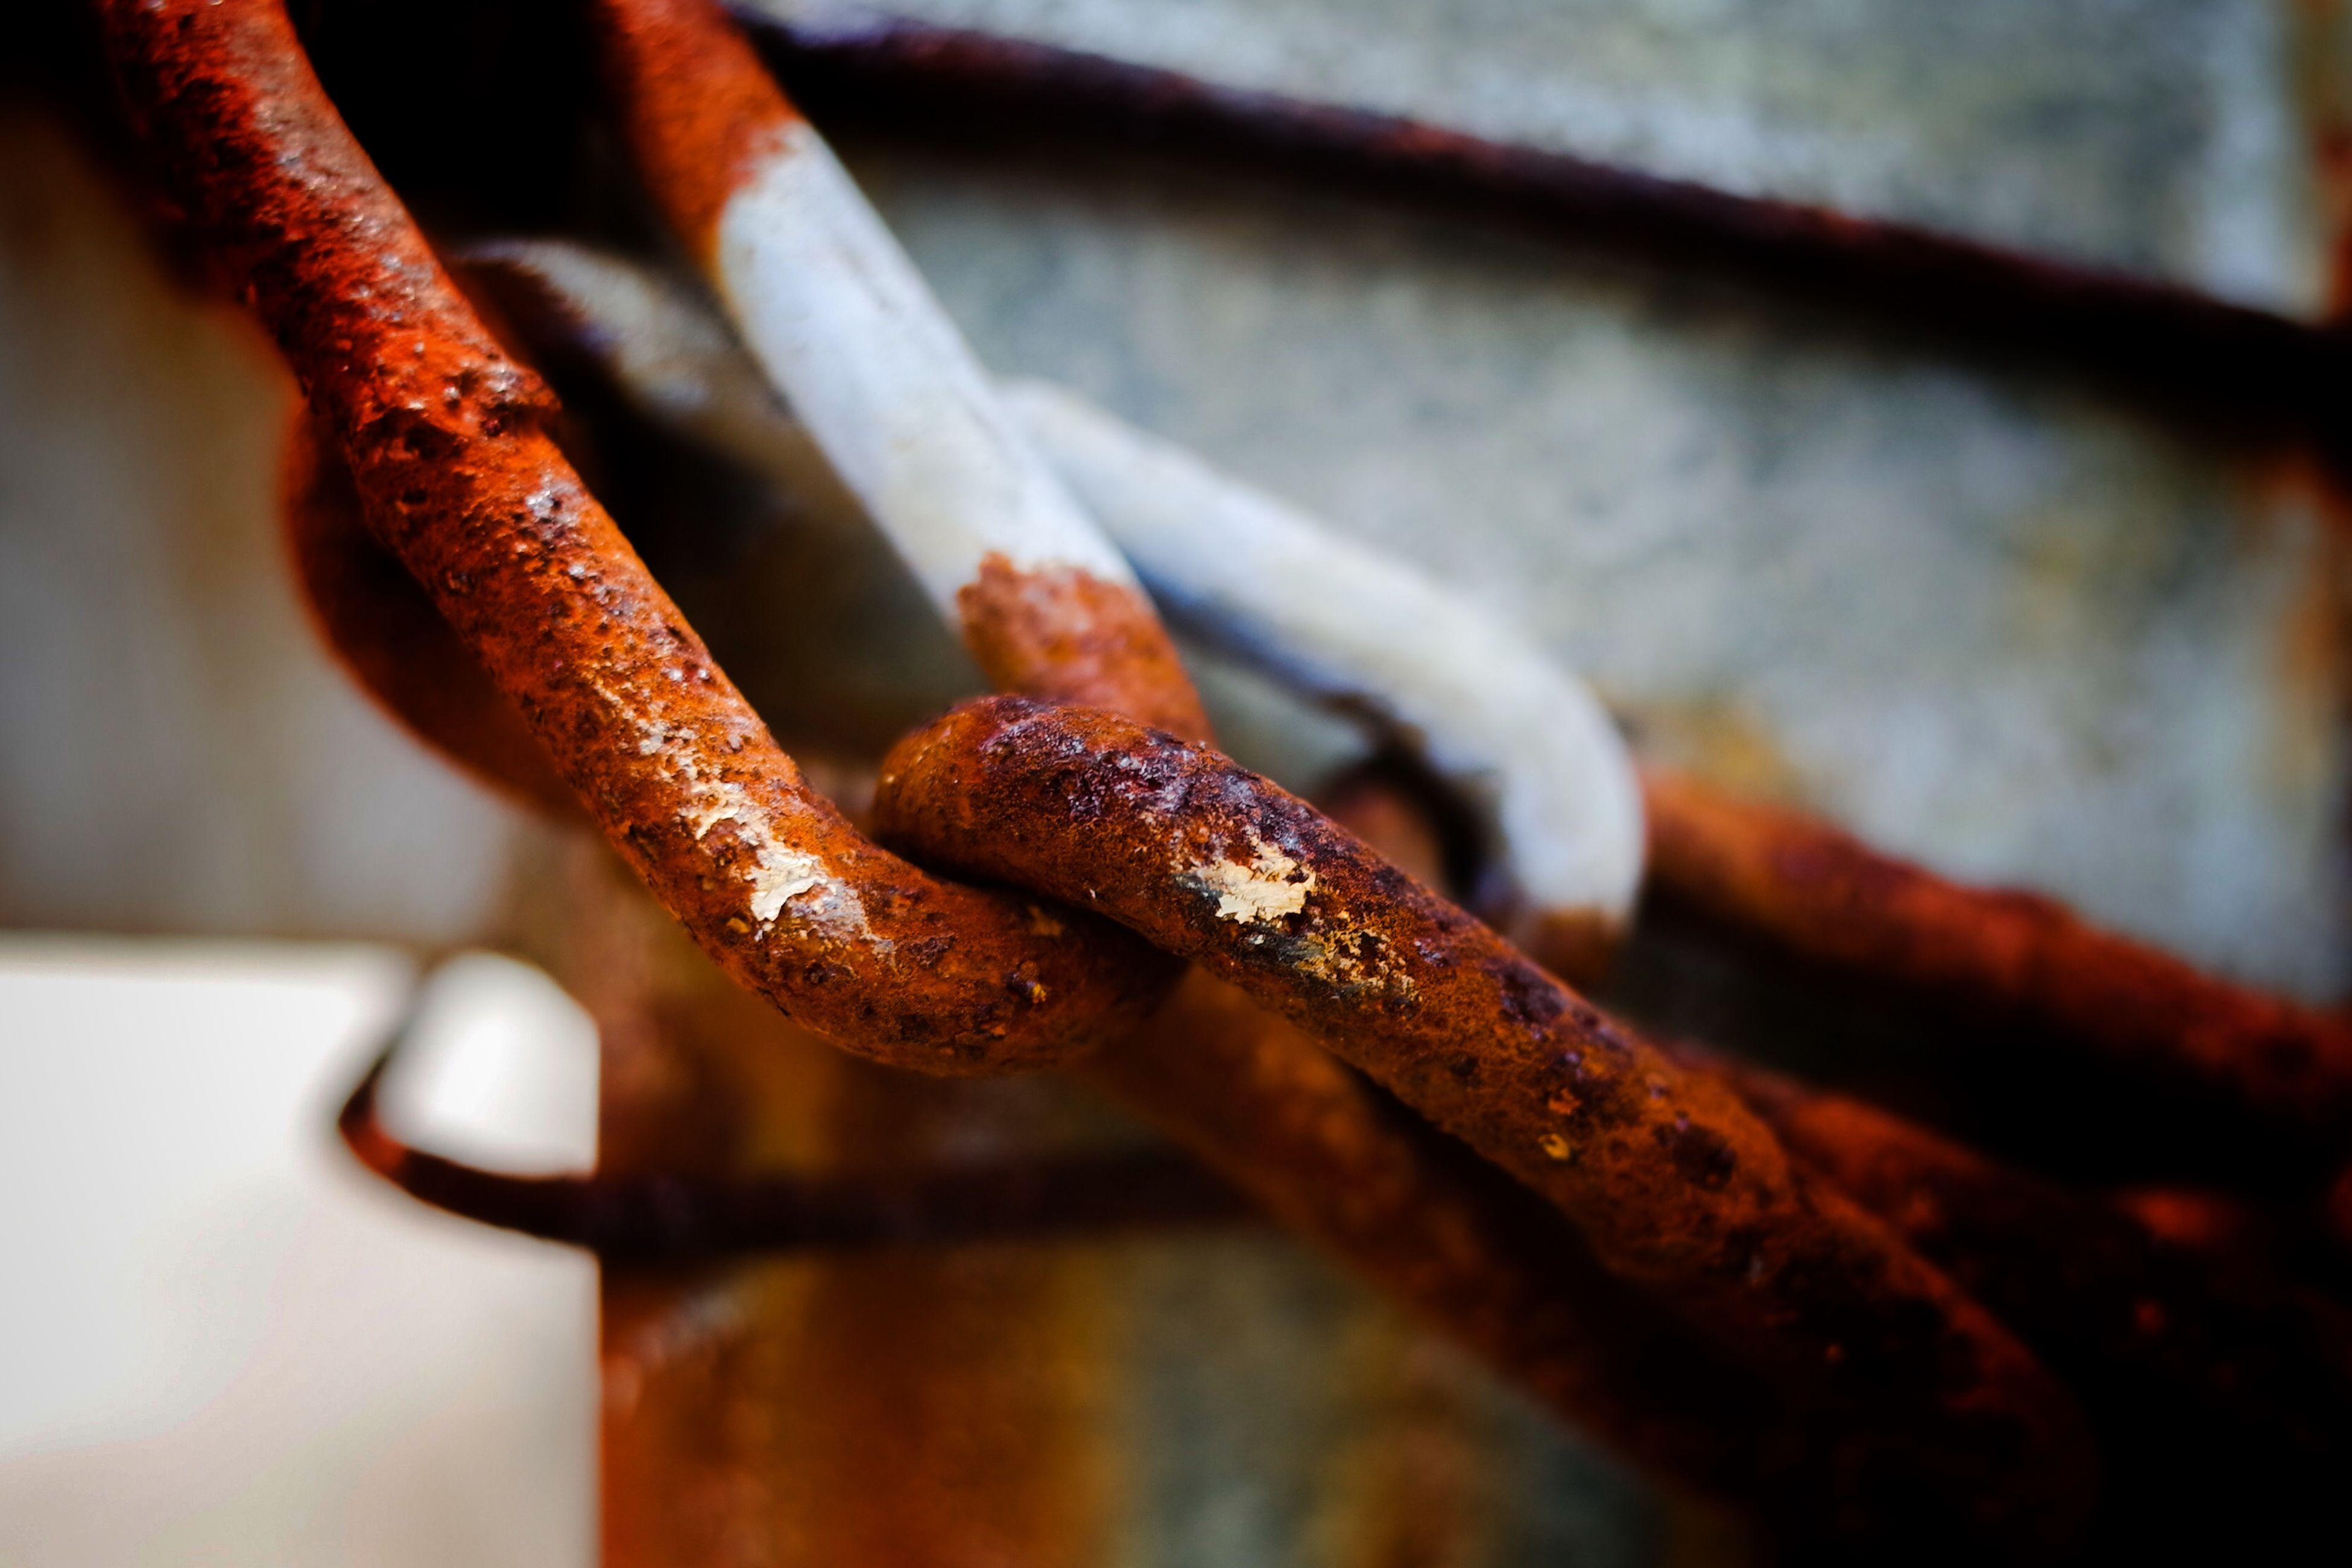 close-up, indoors, focus on foreground, rusty, selective focus, metal, wood - material, old, metallic, weathered, damaged, day, no people, deterioration, wooden, abandoned, still life, wood, hanging